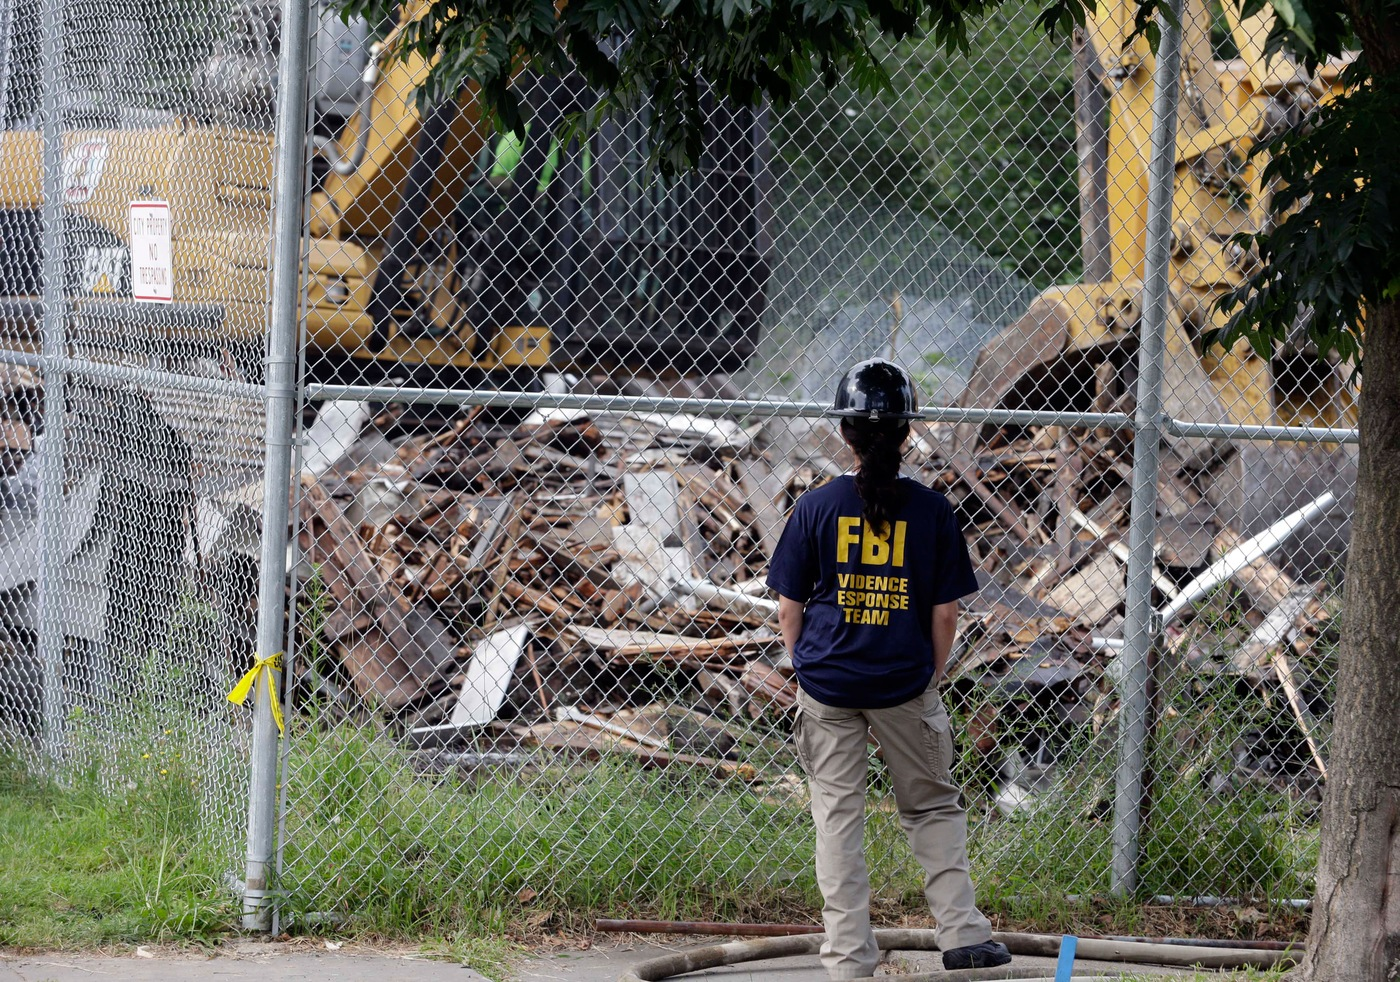 An FBI agent from our Evidence Response Team in Cleveland watches as the house where three women were held captive for more than a decade by Ariel Castro is demolished on August 7, 2013. The home was torn down as part of a plea agreement that spared Castro a possible death sentence; Castro was sentenced to life in prison without the possibility of parole. In the decade leading up to the rescue, the FBI worked hard with its partners to locate the missing women, following every lead and helping to publicize the kidnappings. Since their heroic escape from captivity, the FBI has assisted in numerous ways, lending its investigative, evidence response, behavioral, tactical, victim assistance services, and other capabilities to the investigation, which was prosecuted locally. AP Photo.